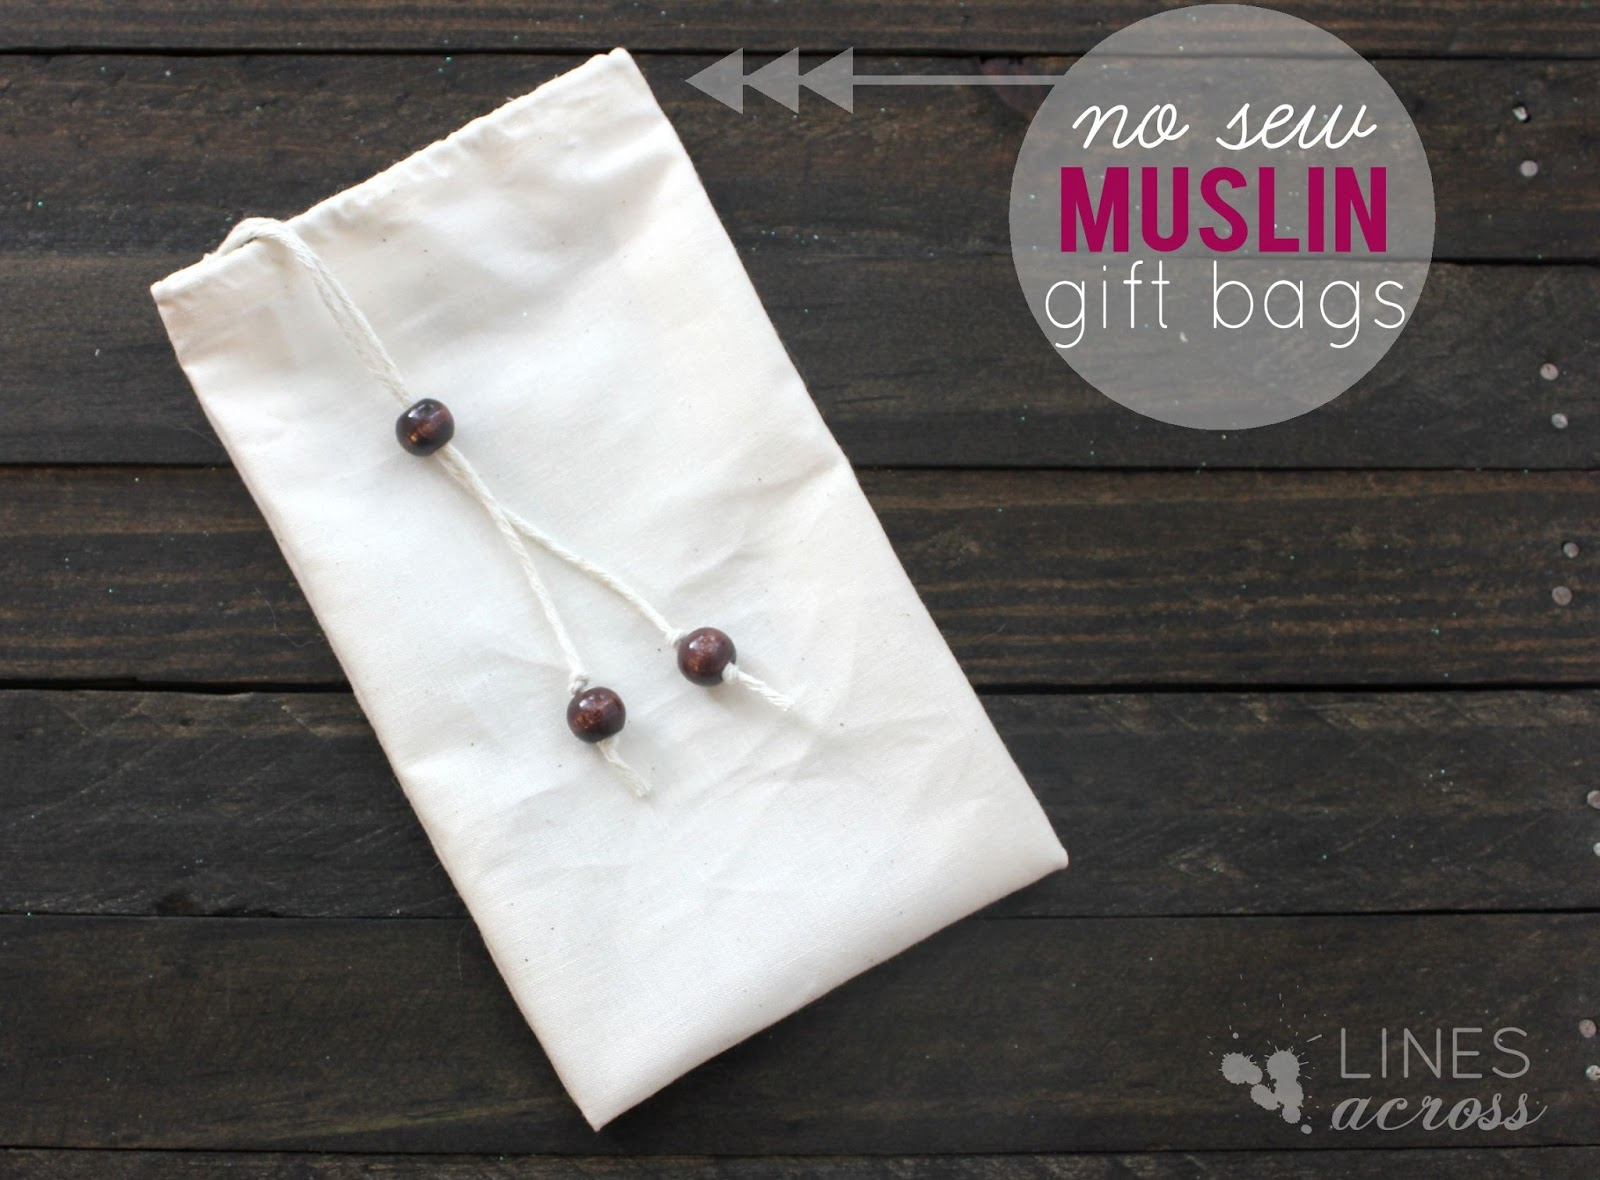 How to Make No Sew Muslin Gift Bags - Lines Across